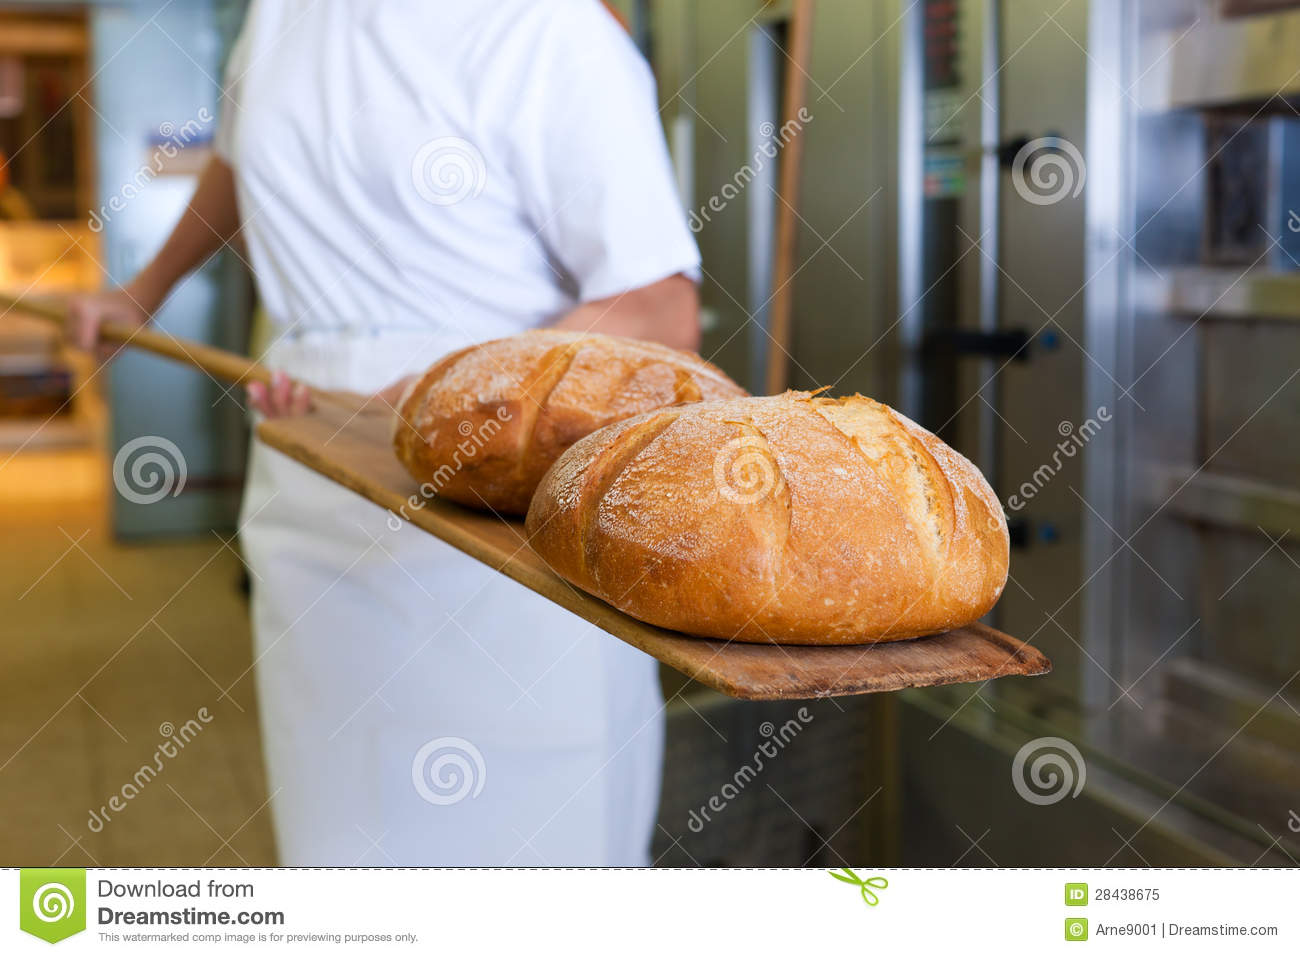 Baker baking bread showing the product